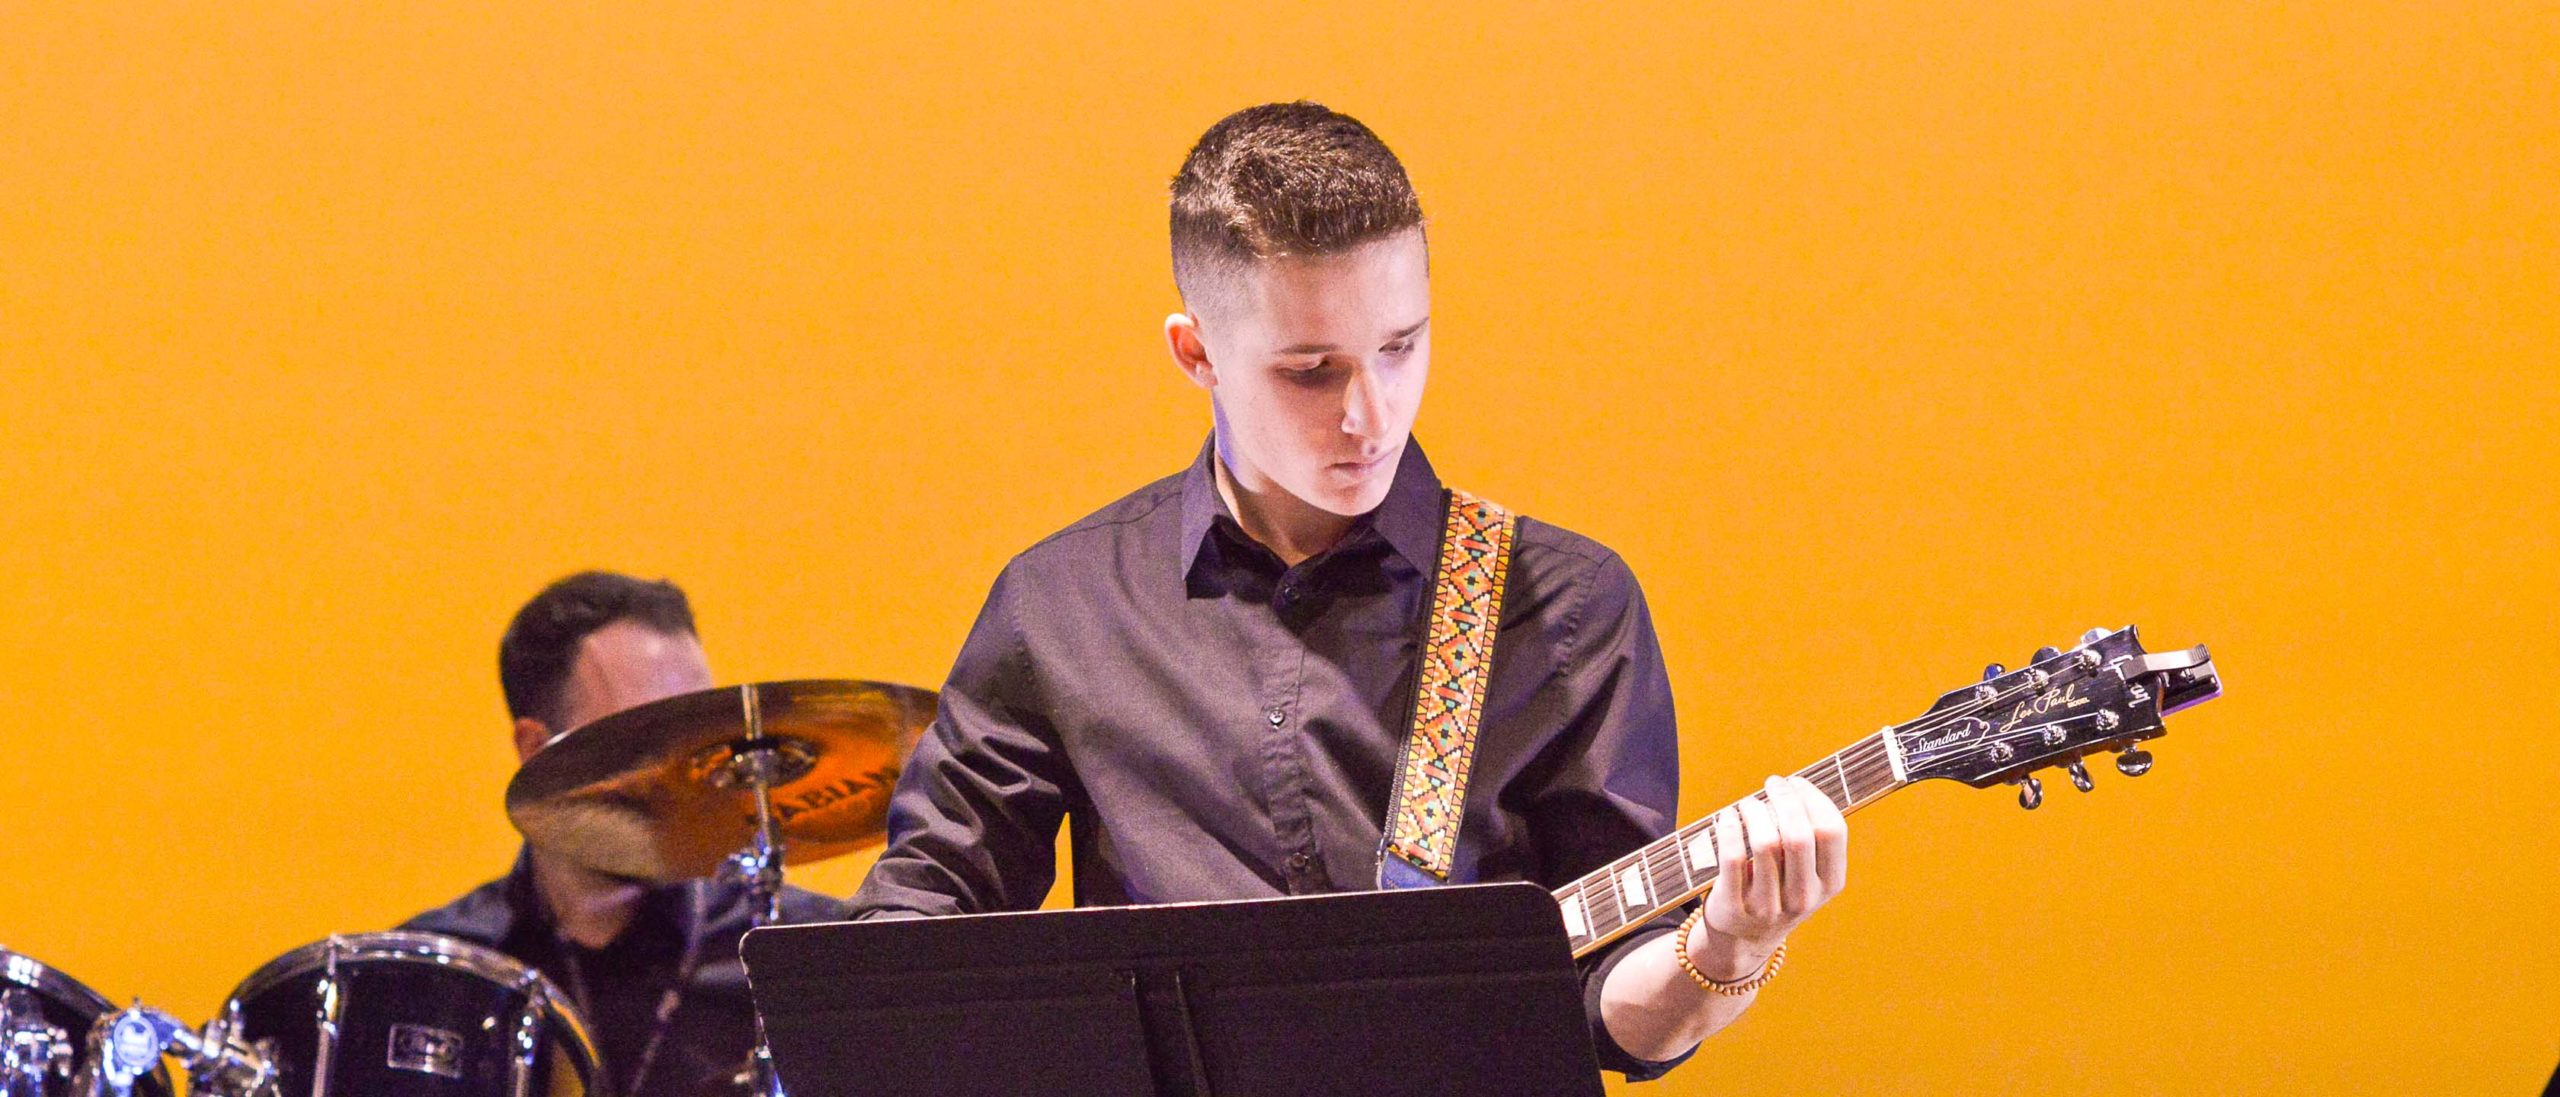 Boy student playing the guitar on stage